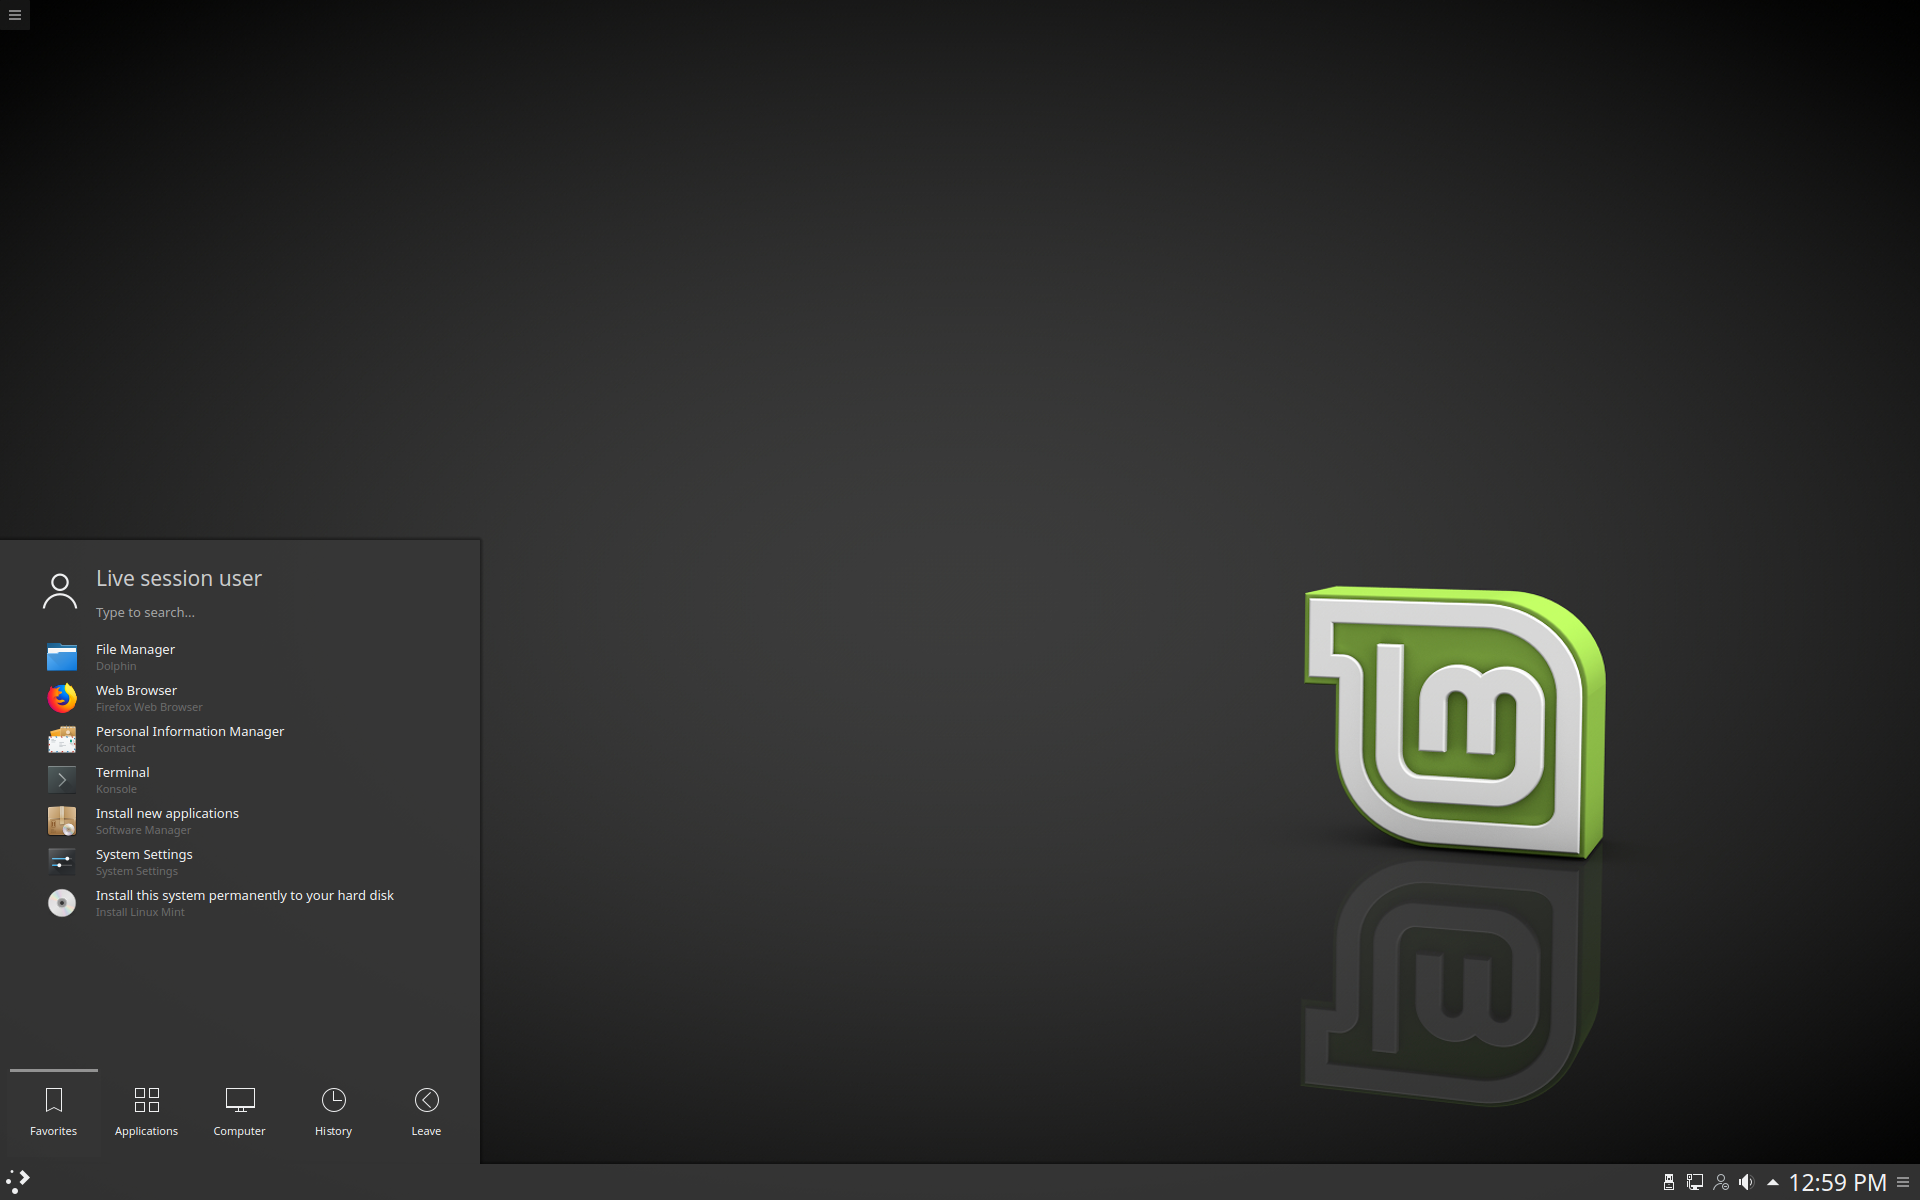 New features in Linux Mint 18 3 KDE - Linux Mint